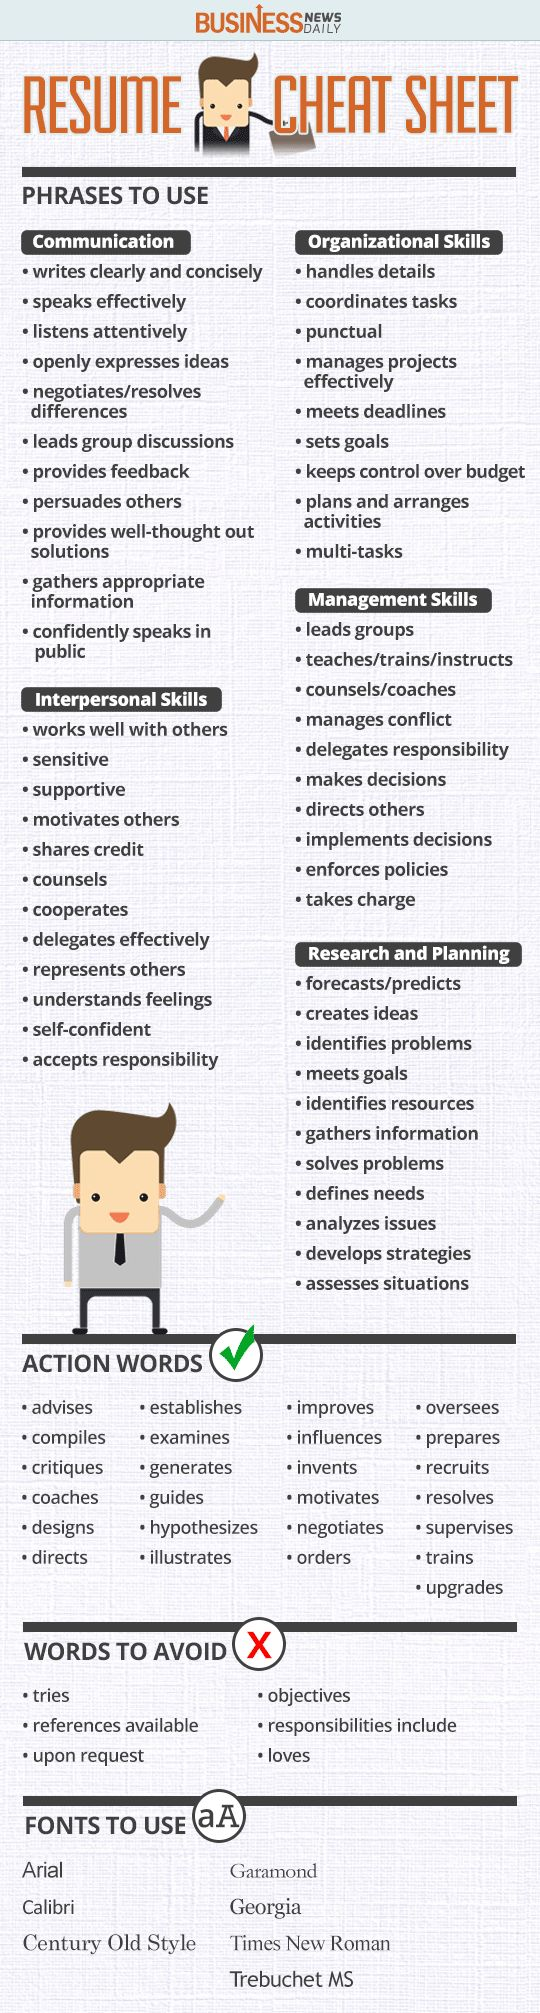 17 best resume ideas resume styles resume format crystaldiercks the only resume cheat sheet you will ever need is putting your resume together making you question if you should apply for a job